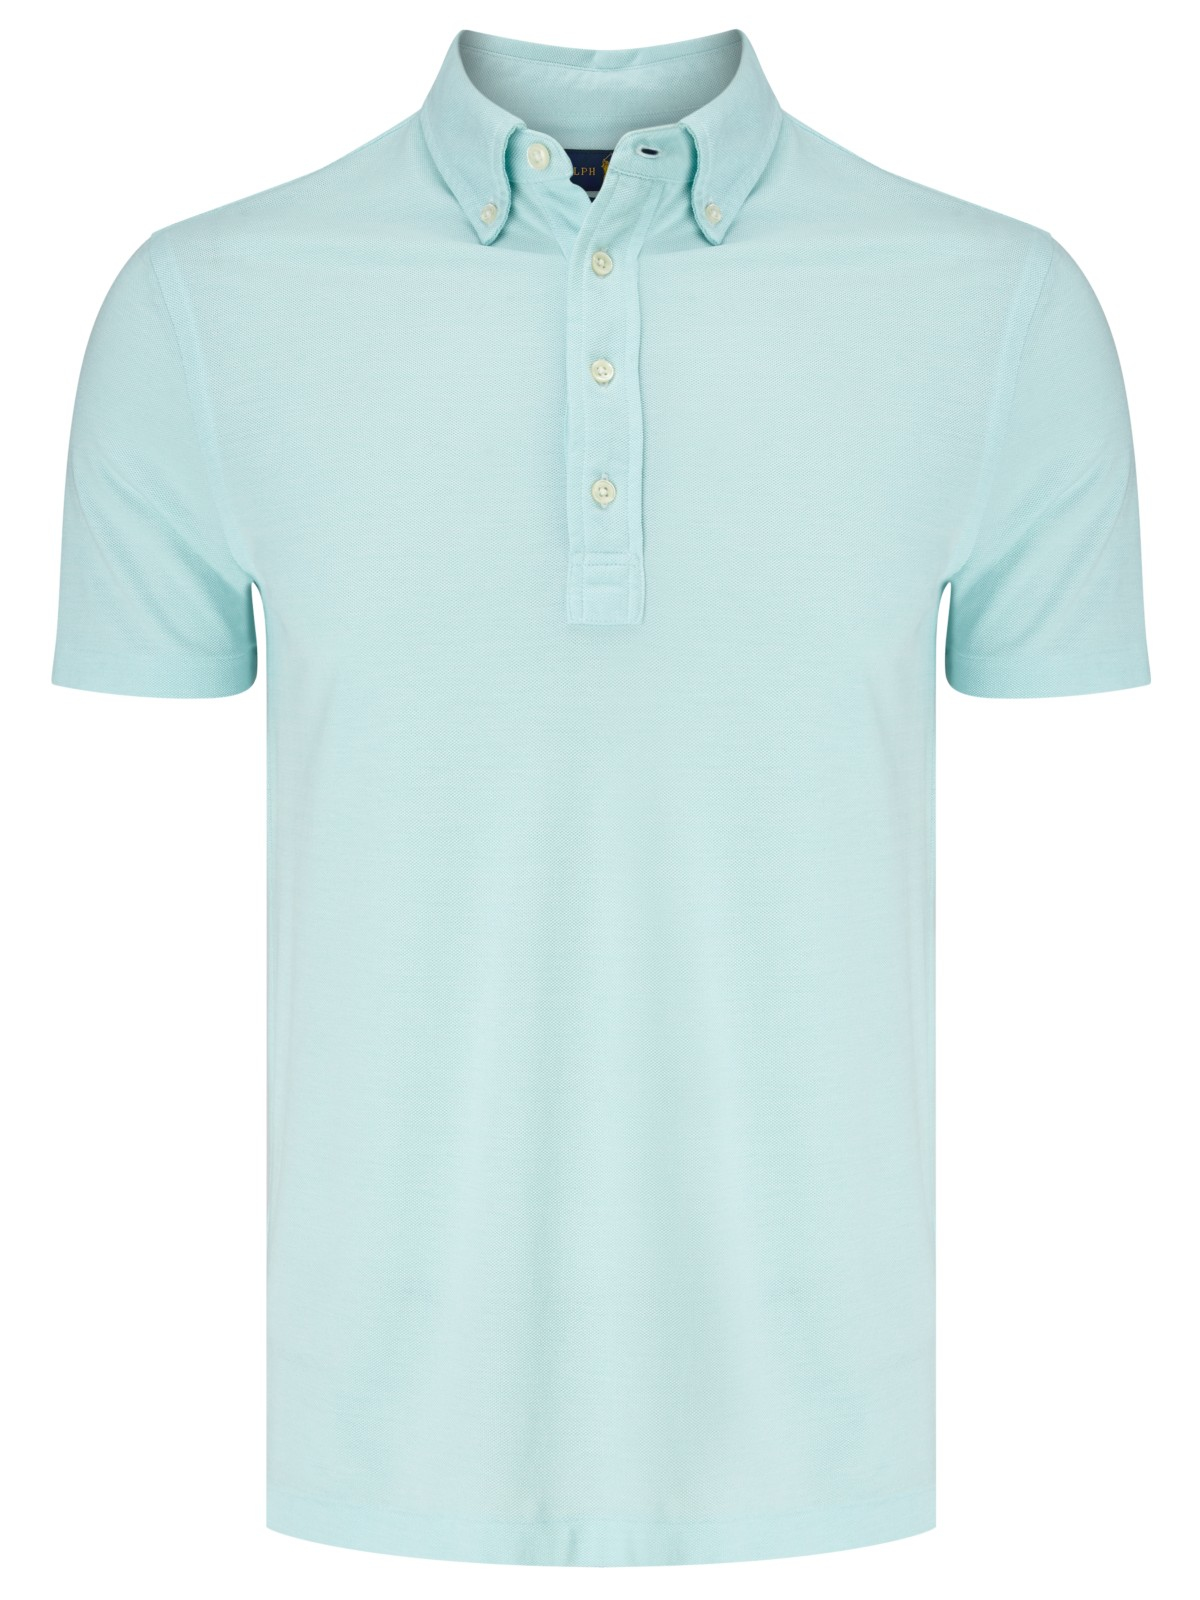 Pink pony polo oxford polo shirt in teal for men for Mens teal polo shirt